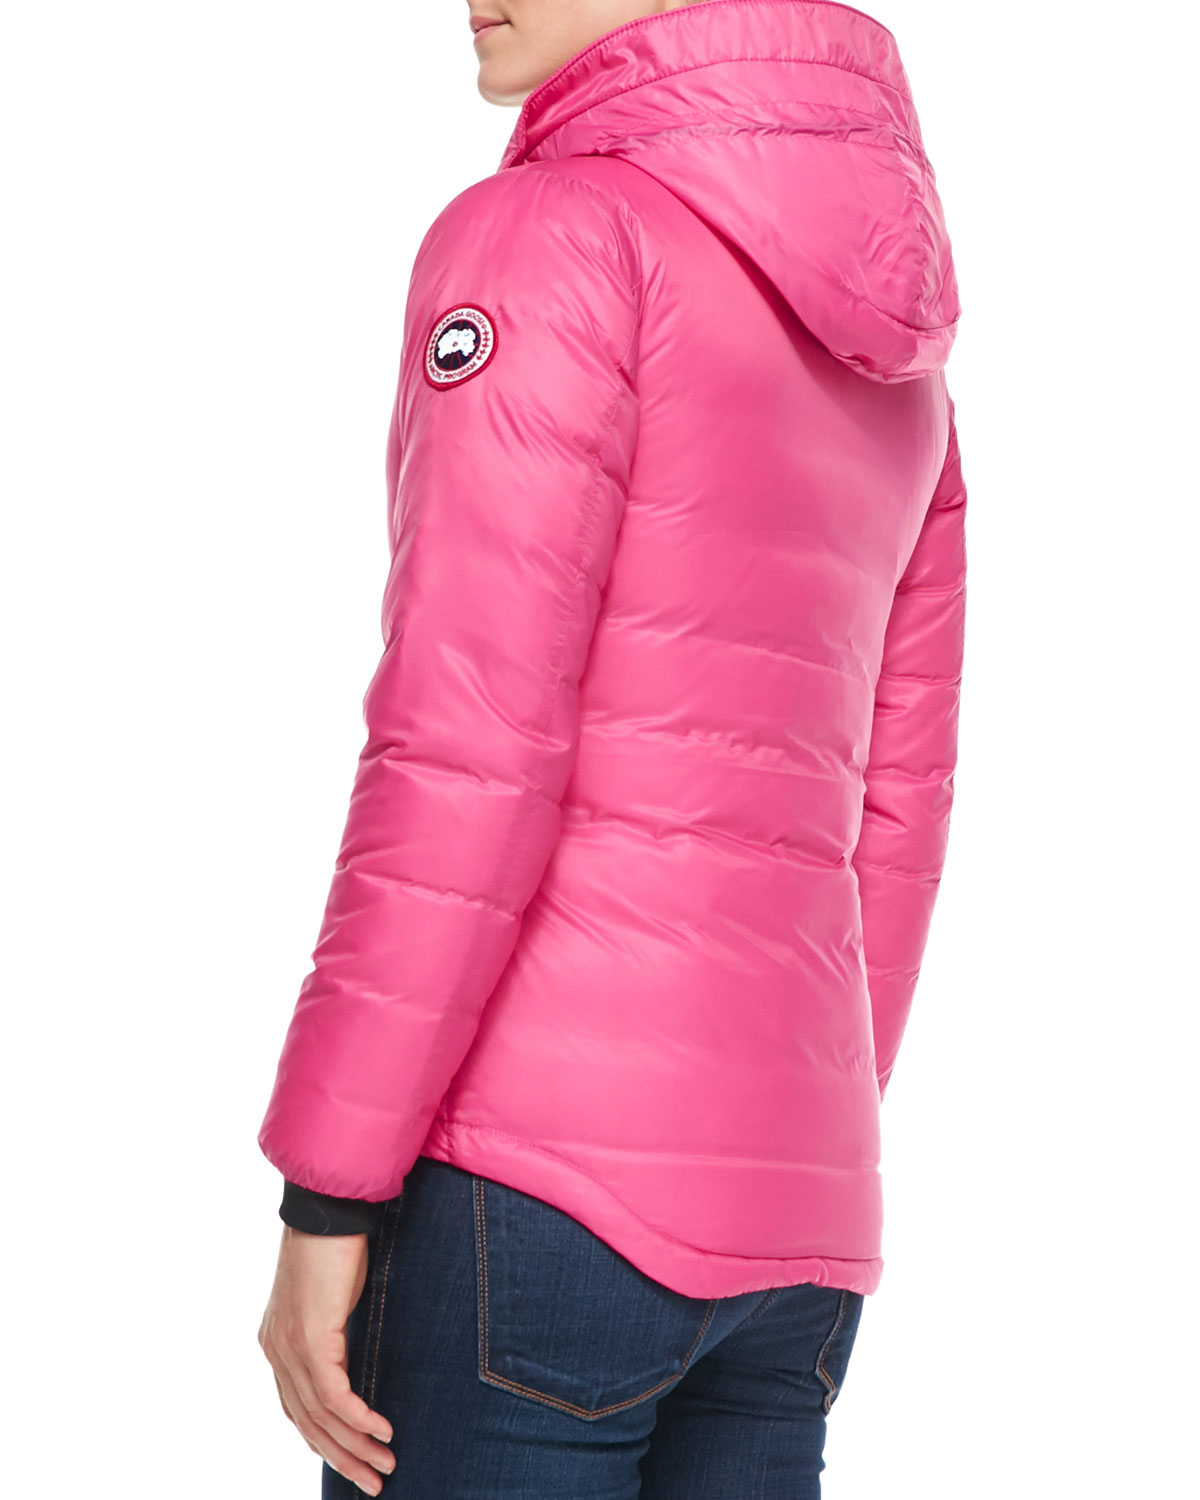 Canada Goose Camp Hooded Jacket f23adce64